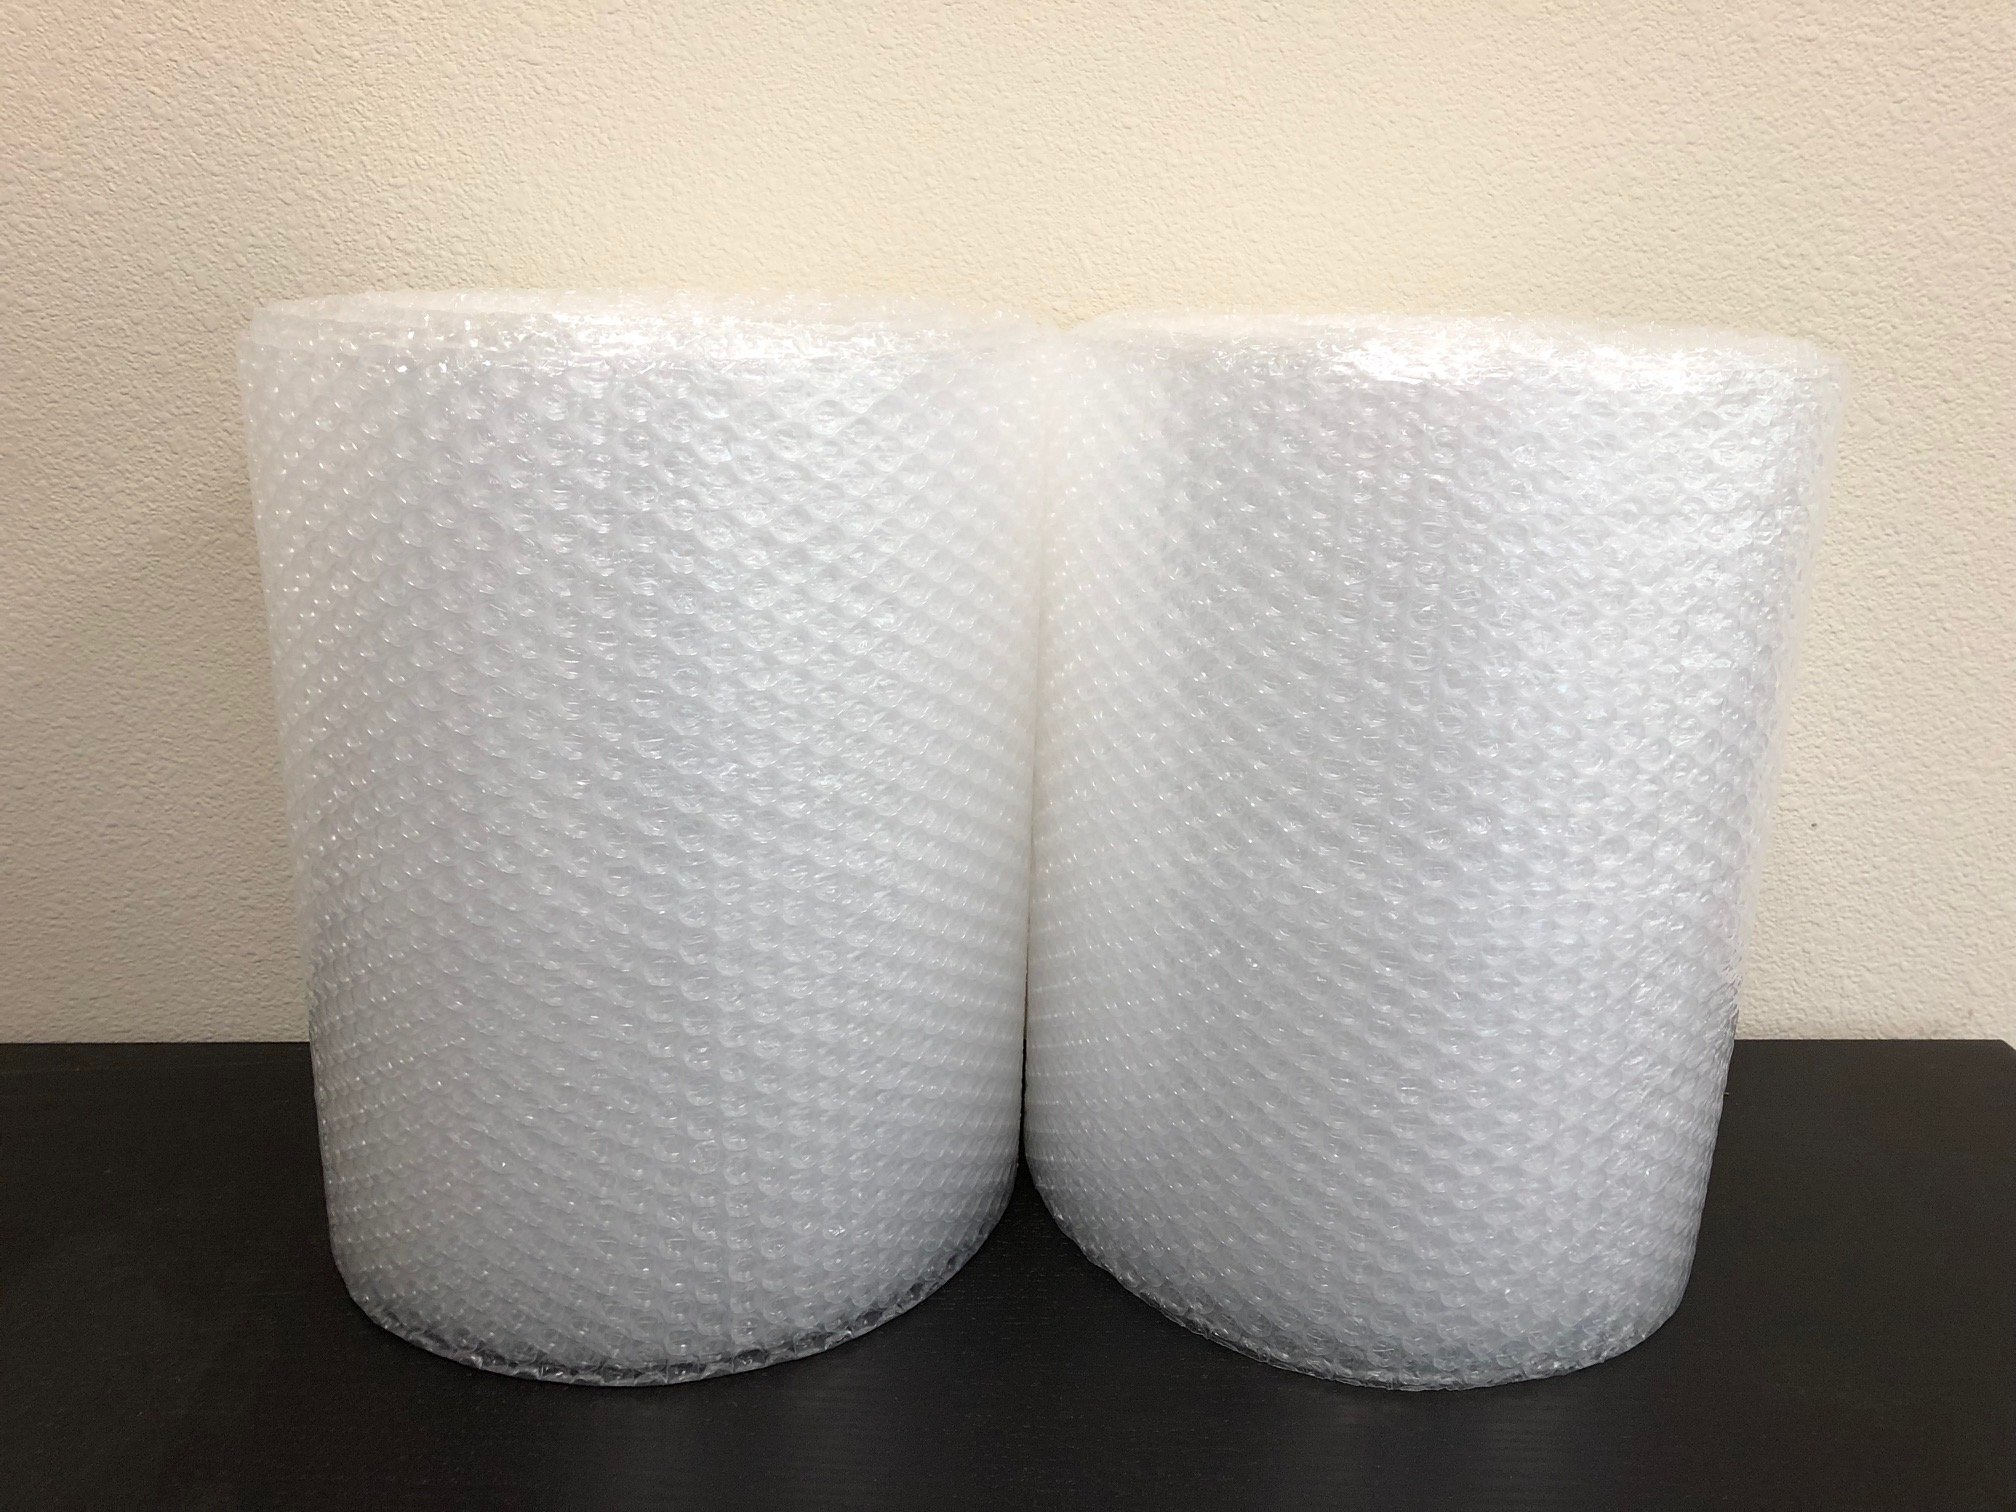 2-Pack Bubble Cushioning Wrap Rolls, 3/16'' x 12'' x 60' ft Total, Perforated Every 12'' for Packaging, Shipping, Mailing